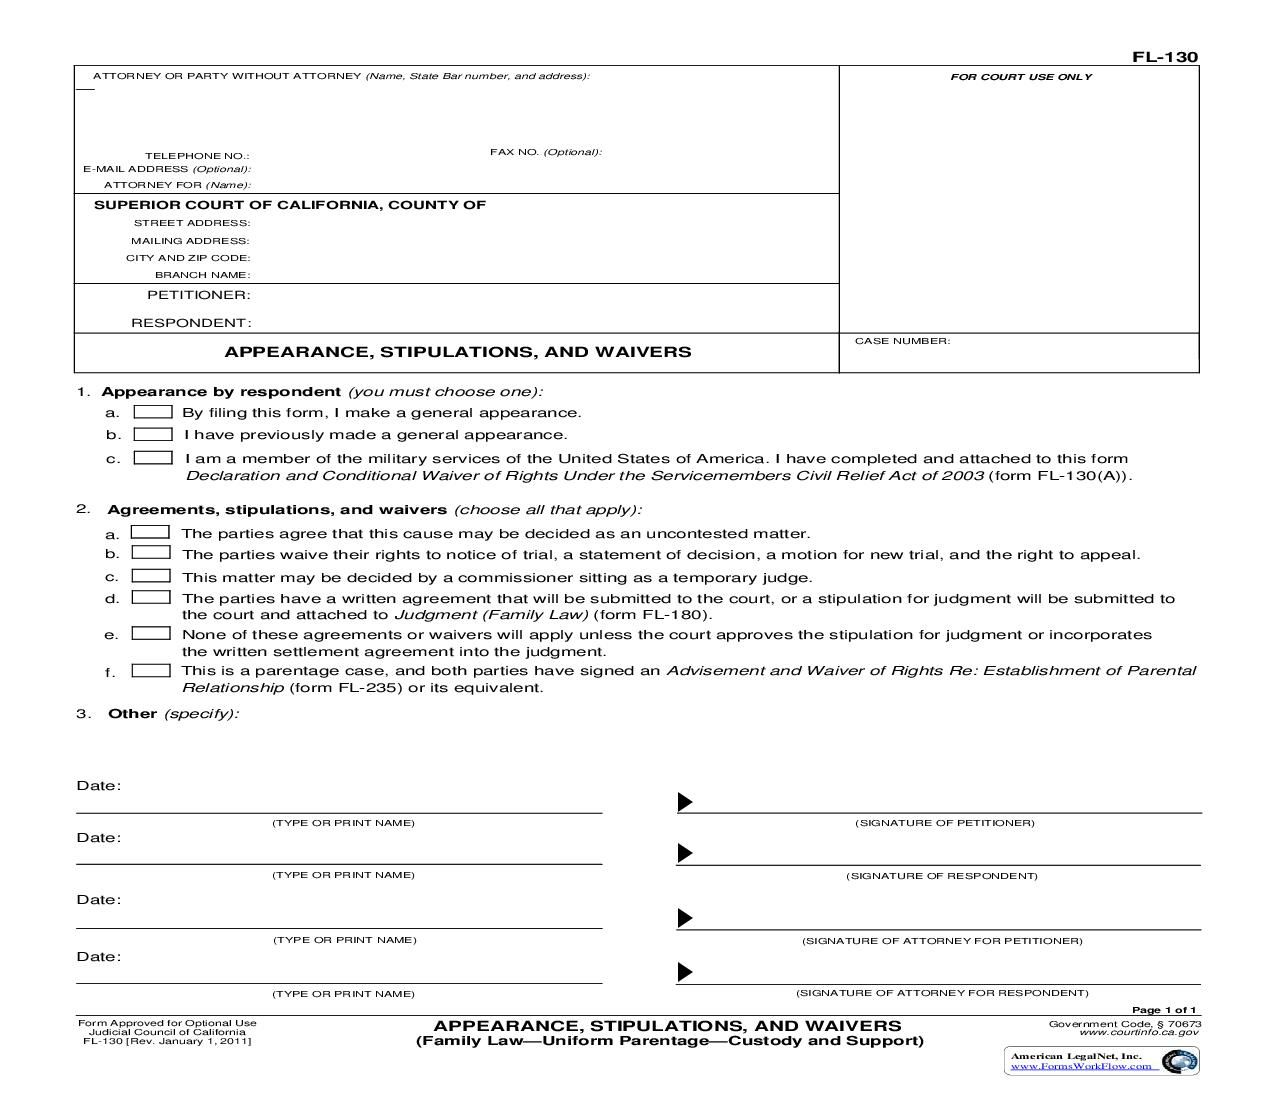 This Is A California Form That Can Be Used For Family Law